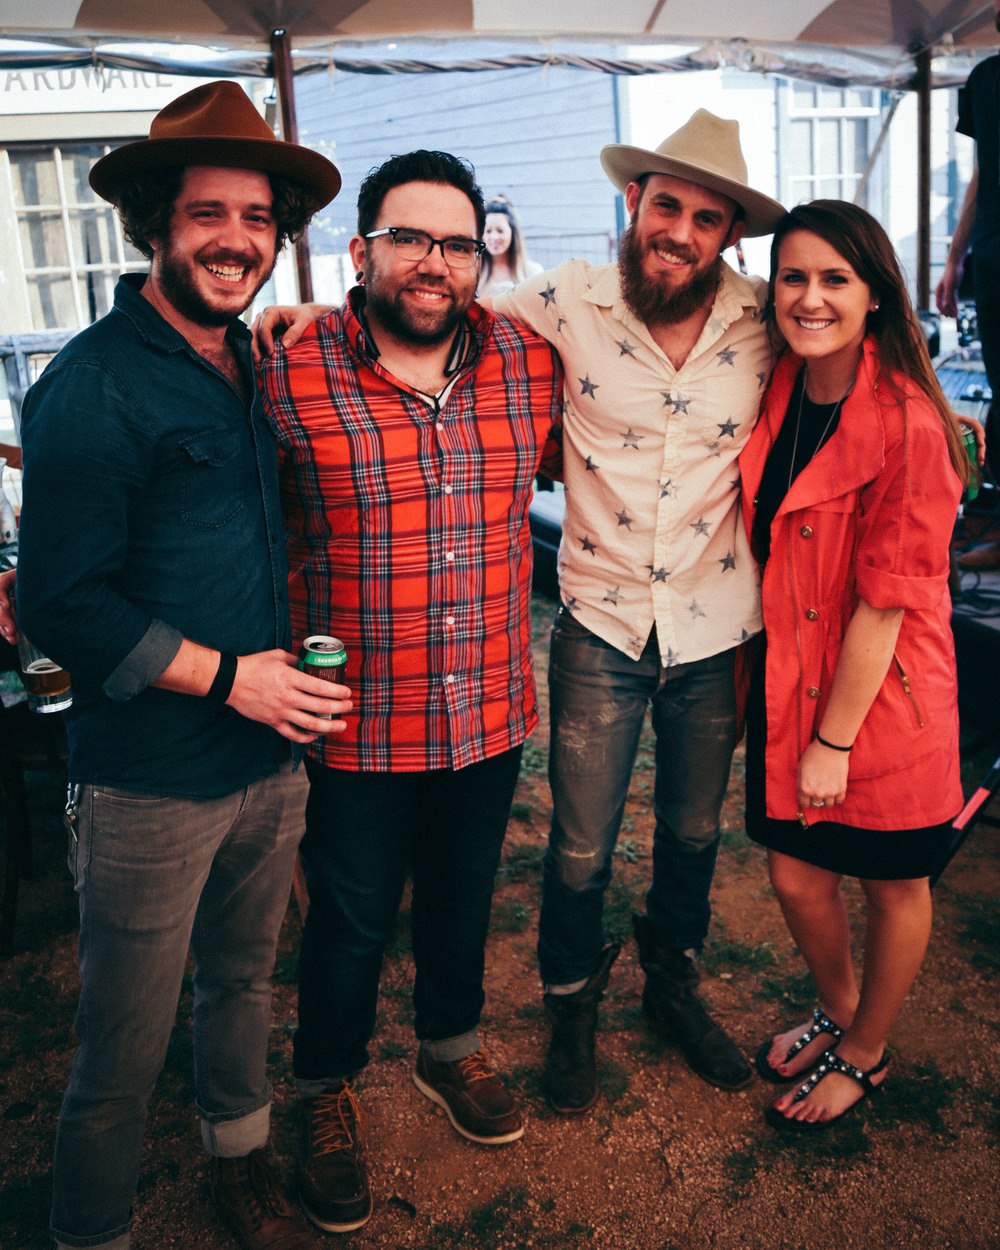 Joshua, Keith (our booking agent), Denton, & Jaclyn (our publicist) at Willie Nelsons before we played.